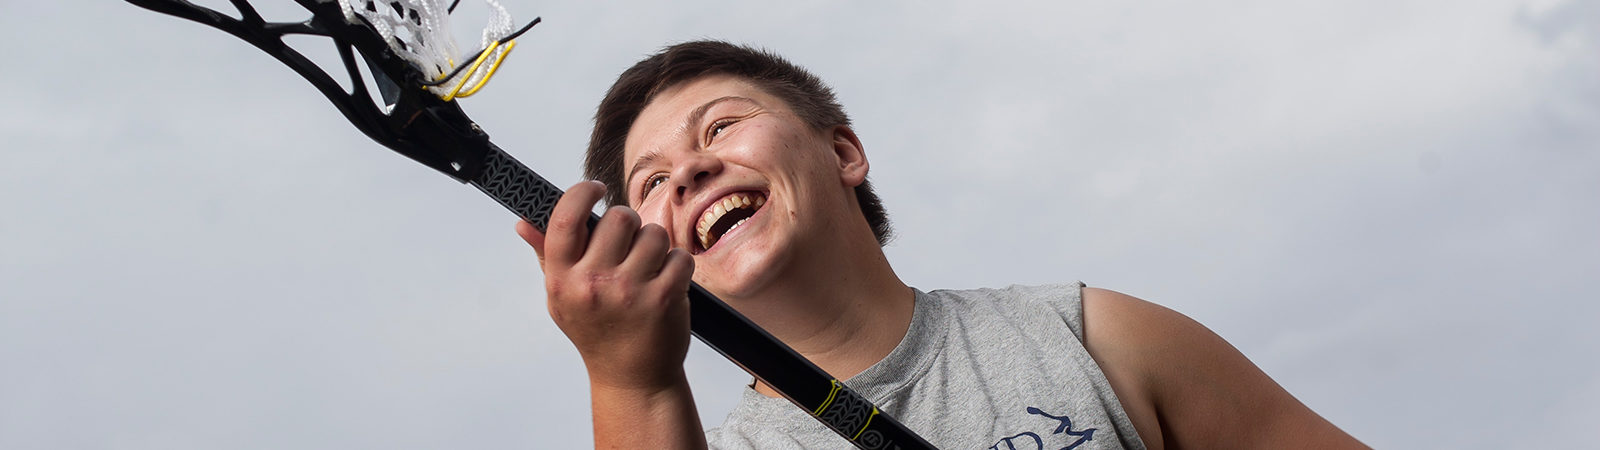 Northland student playing lacrosse.